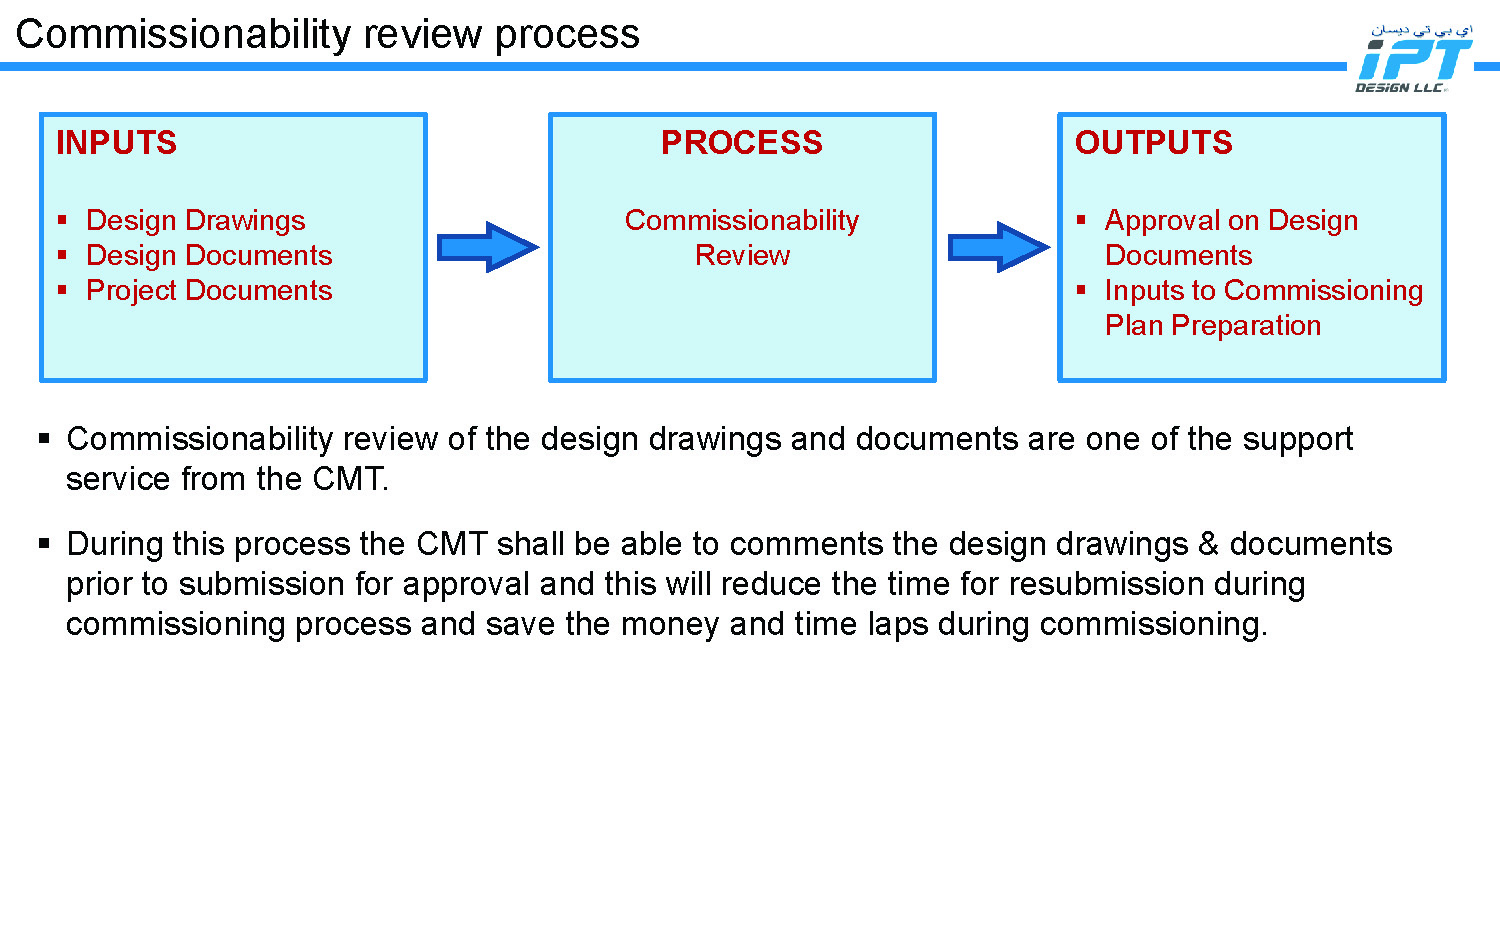 IPT Design LLC - Commissioning Management Process_Page_05.jpg